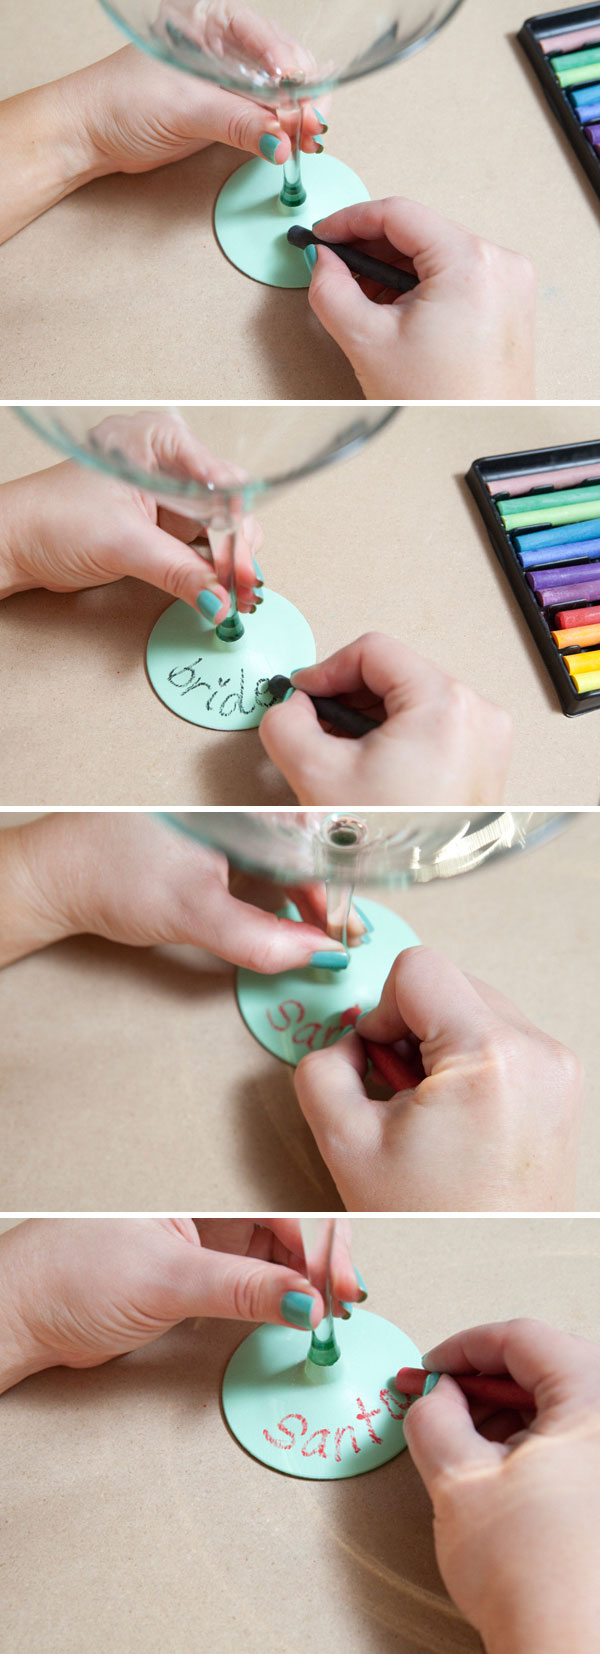 DIY chalkboard martini glasses! Write your name and take a sip! www.SomethingTurquoise.com